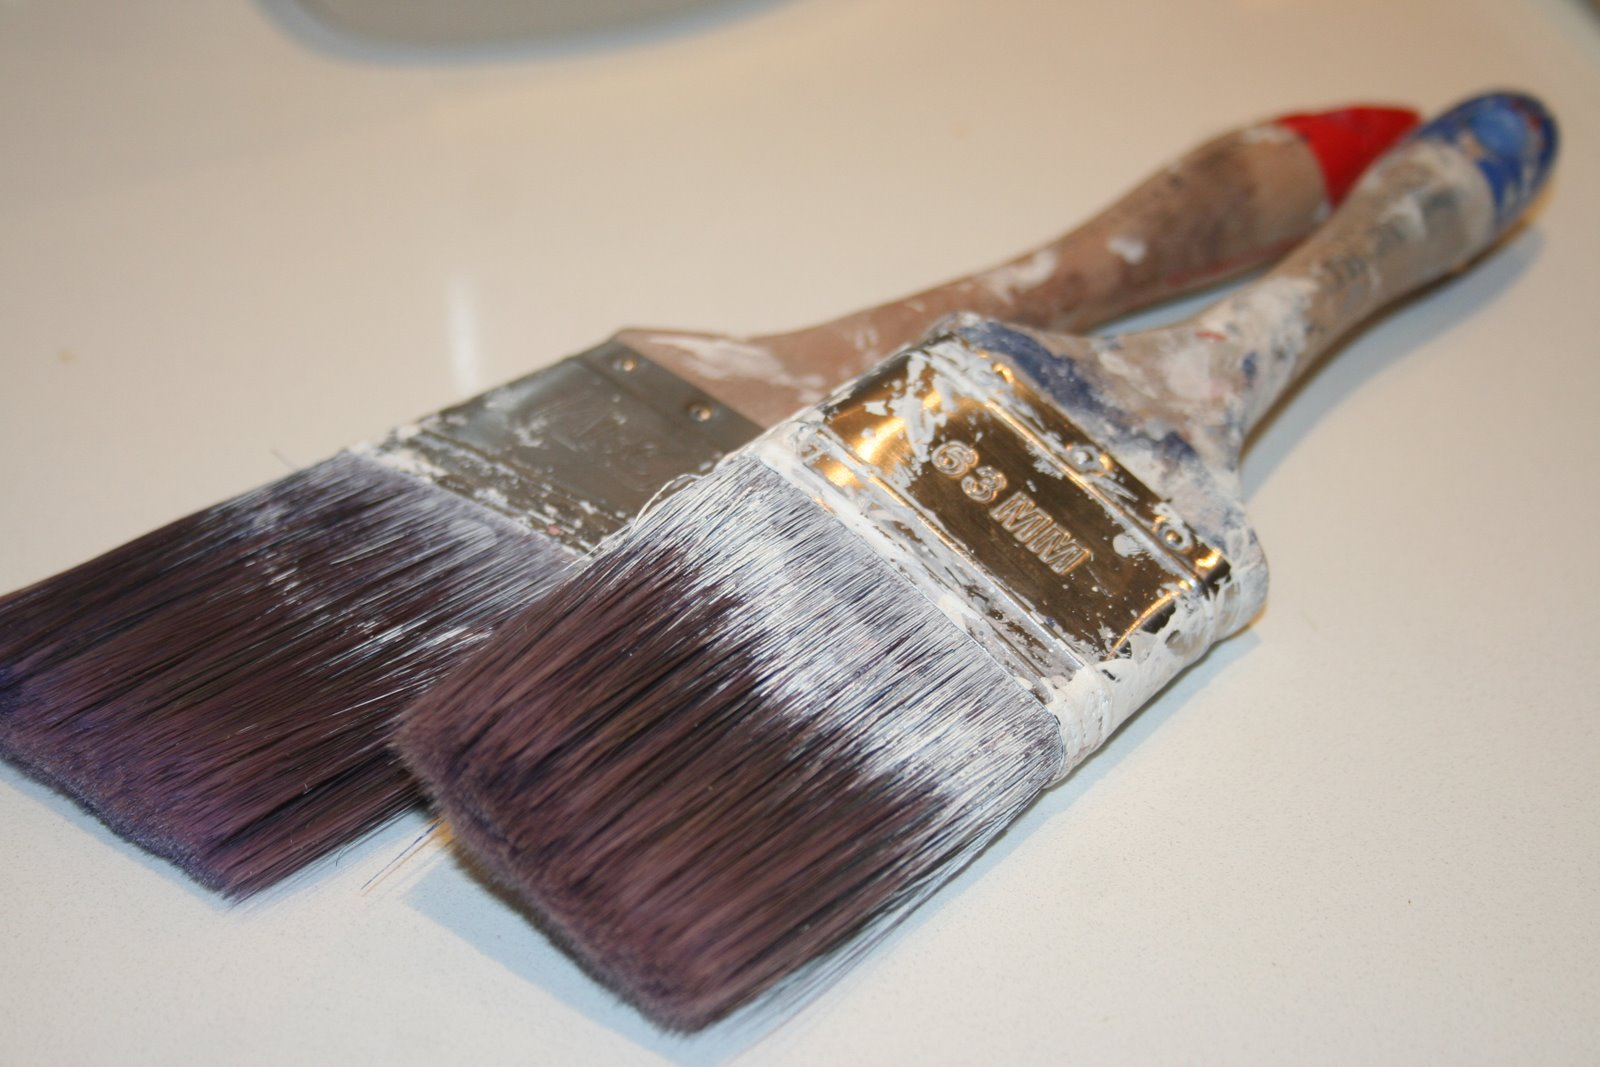 How to clean paintbrushes - How To Clean Your Paint Brushes With Vingear Diy Tips From Lilyfield Life